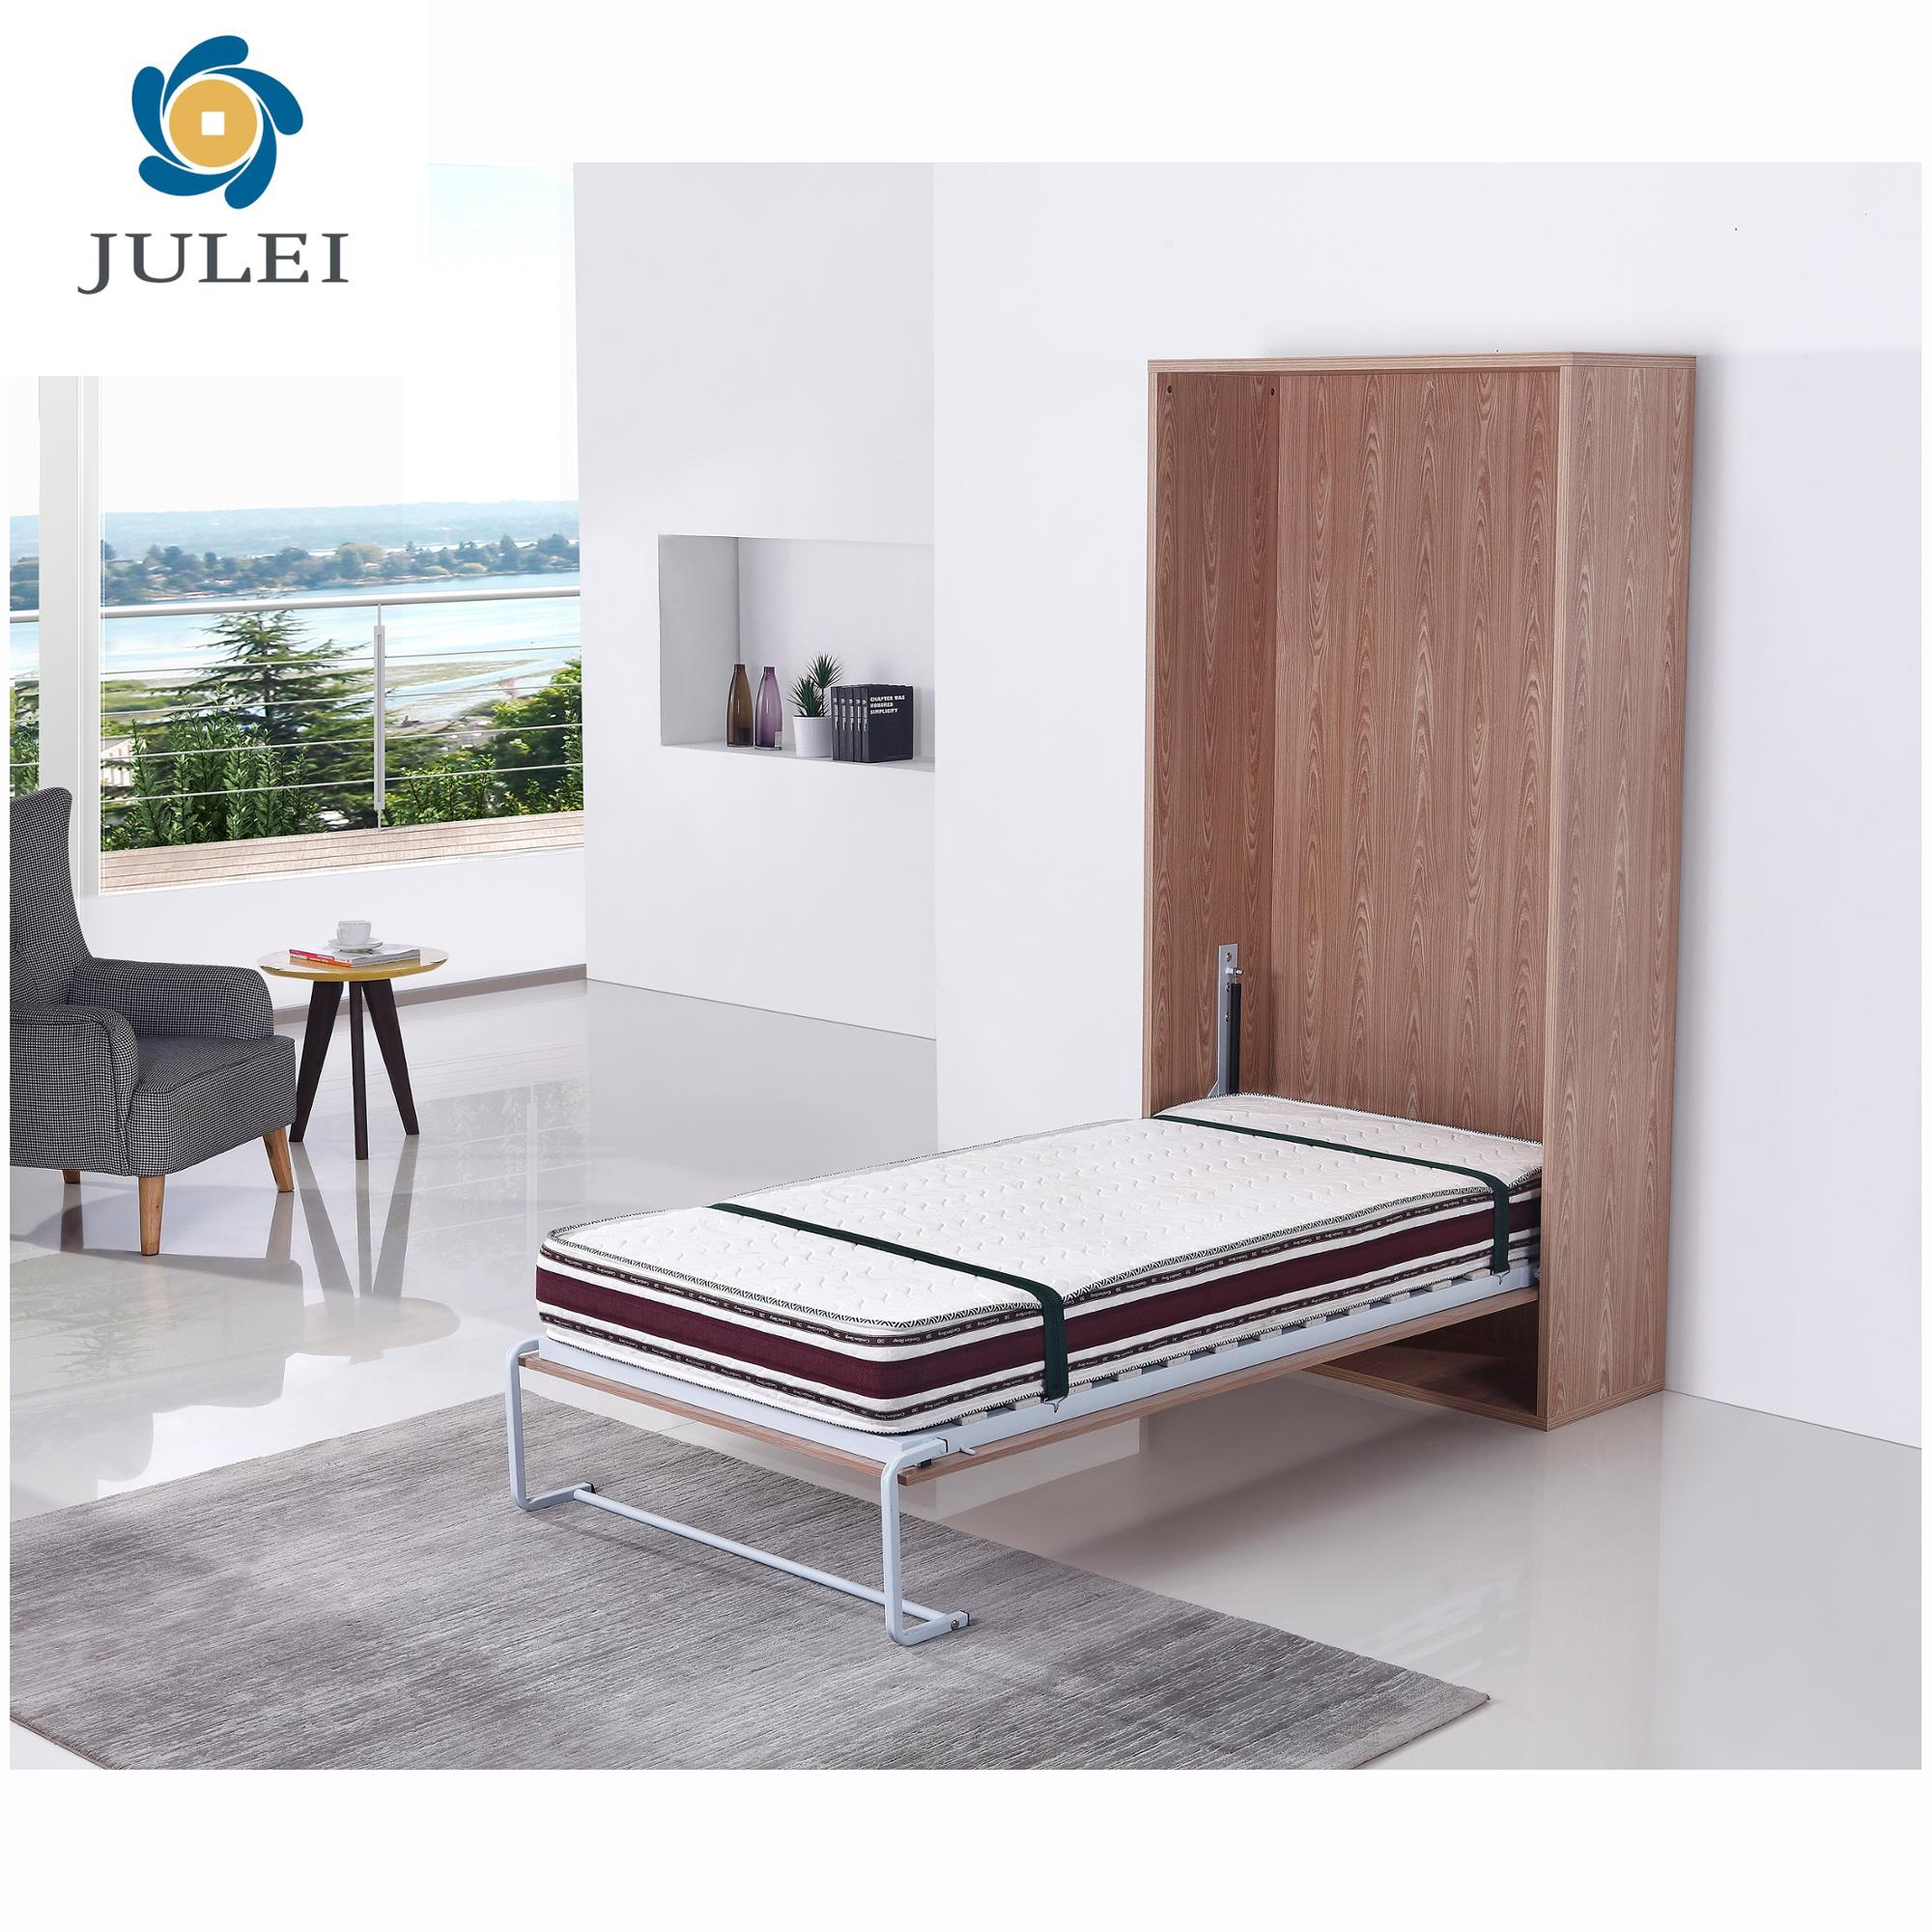 2018 New model Household Manual Hidden Bed Wall Bed Model JL-WD01